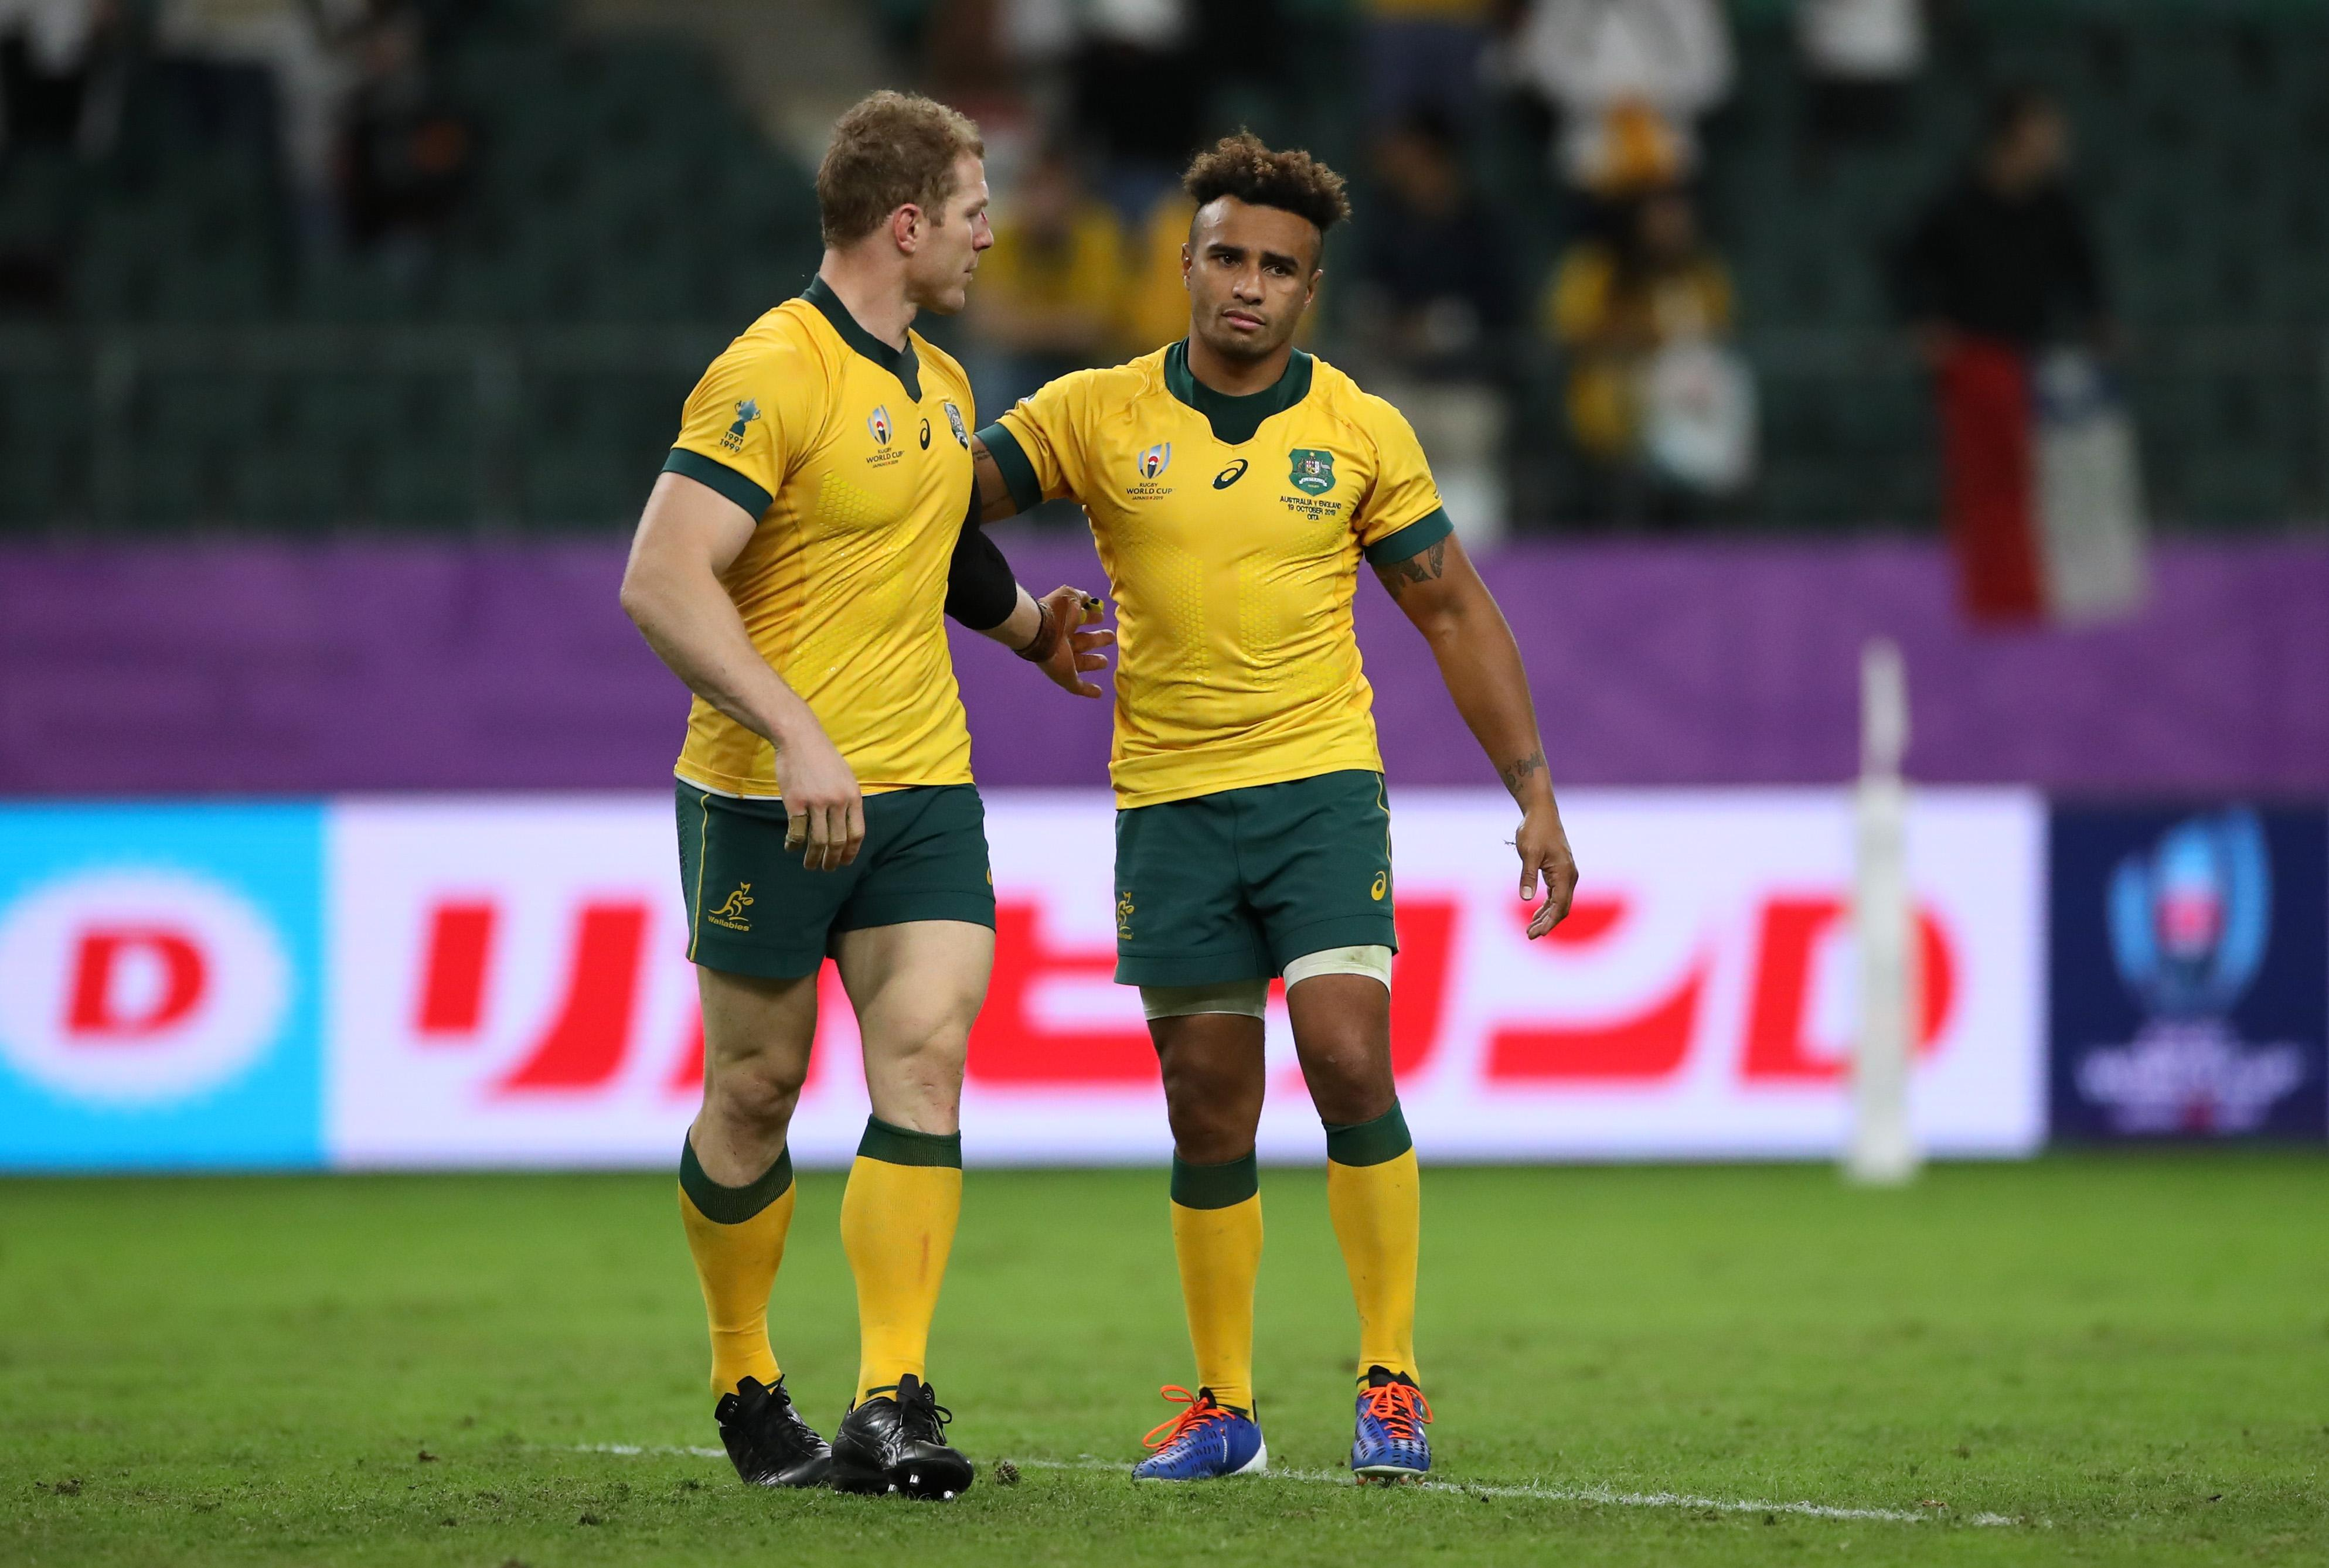 Wallaby greats Pocock and Genia bow out grateful and proud